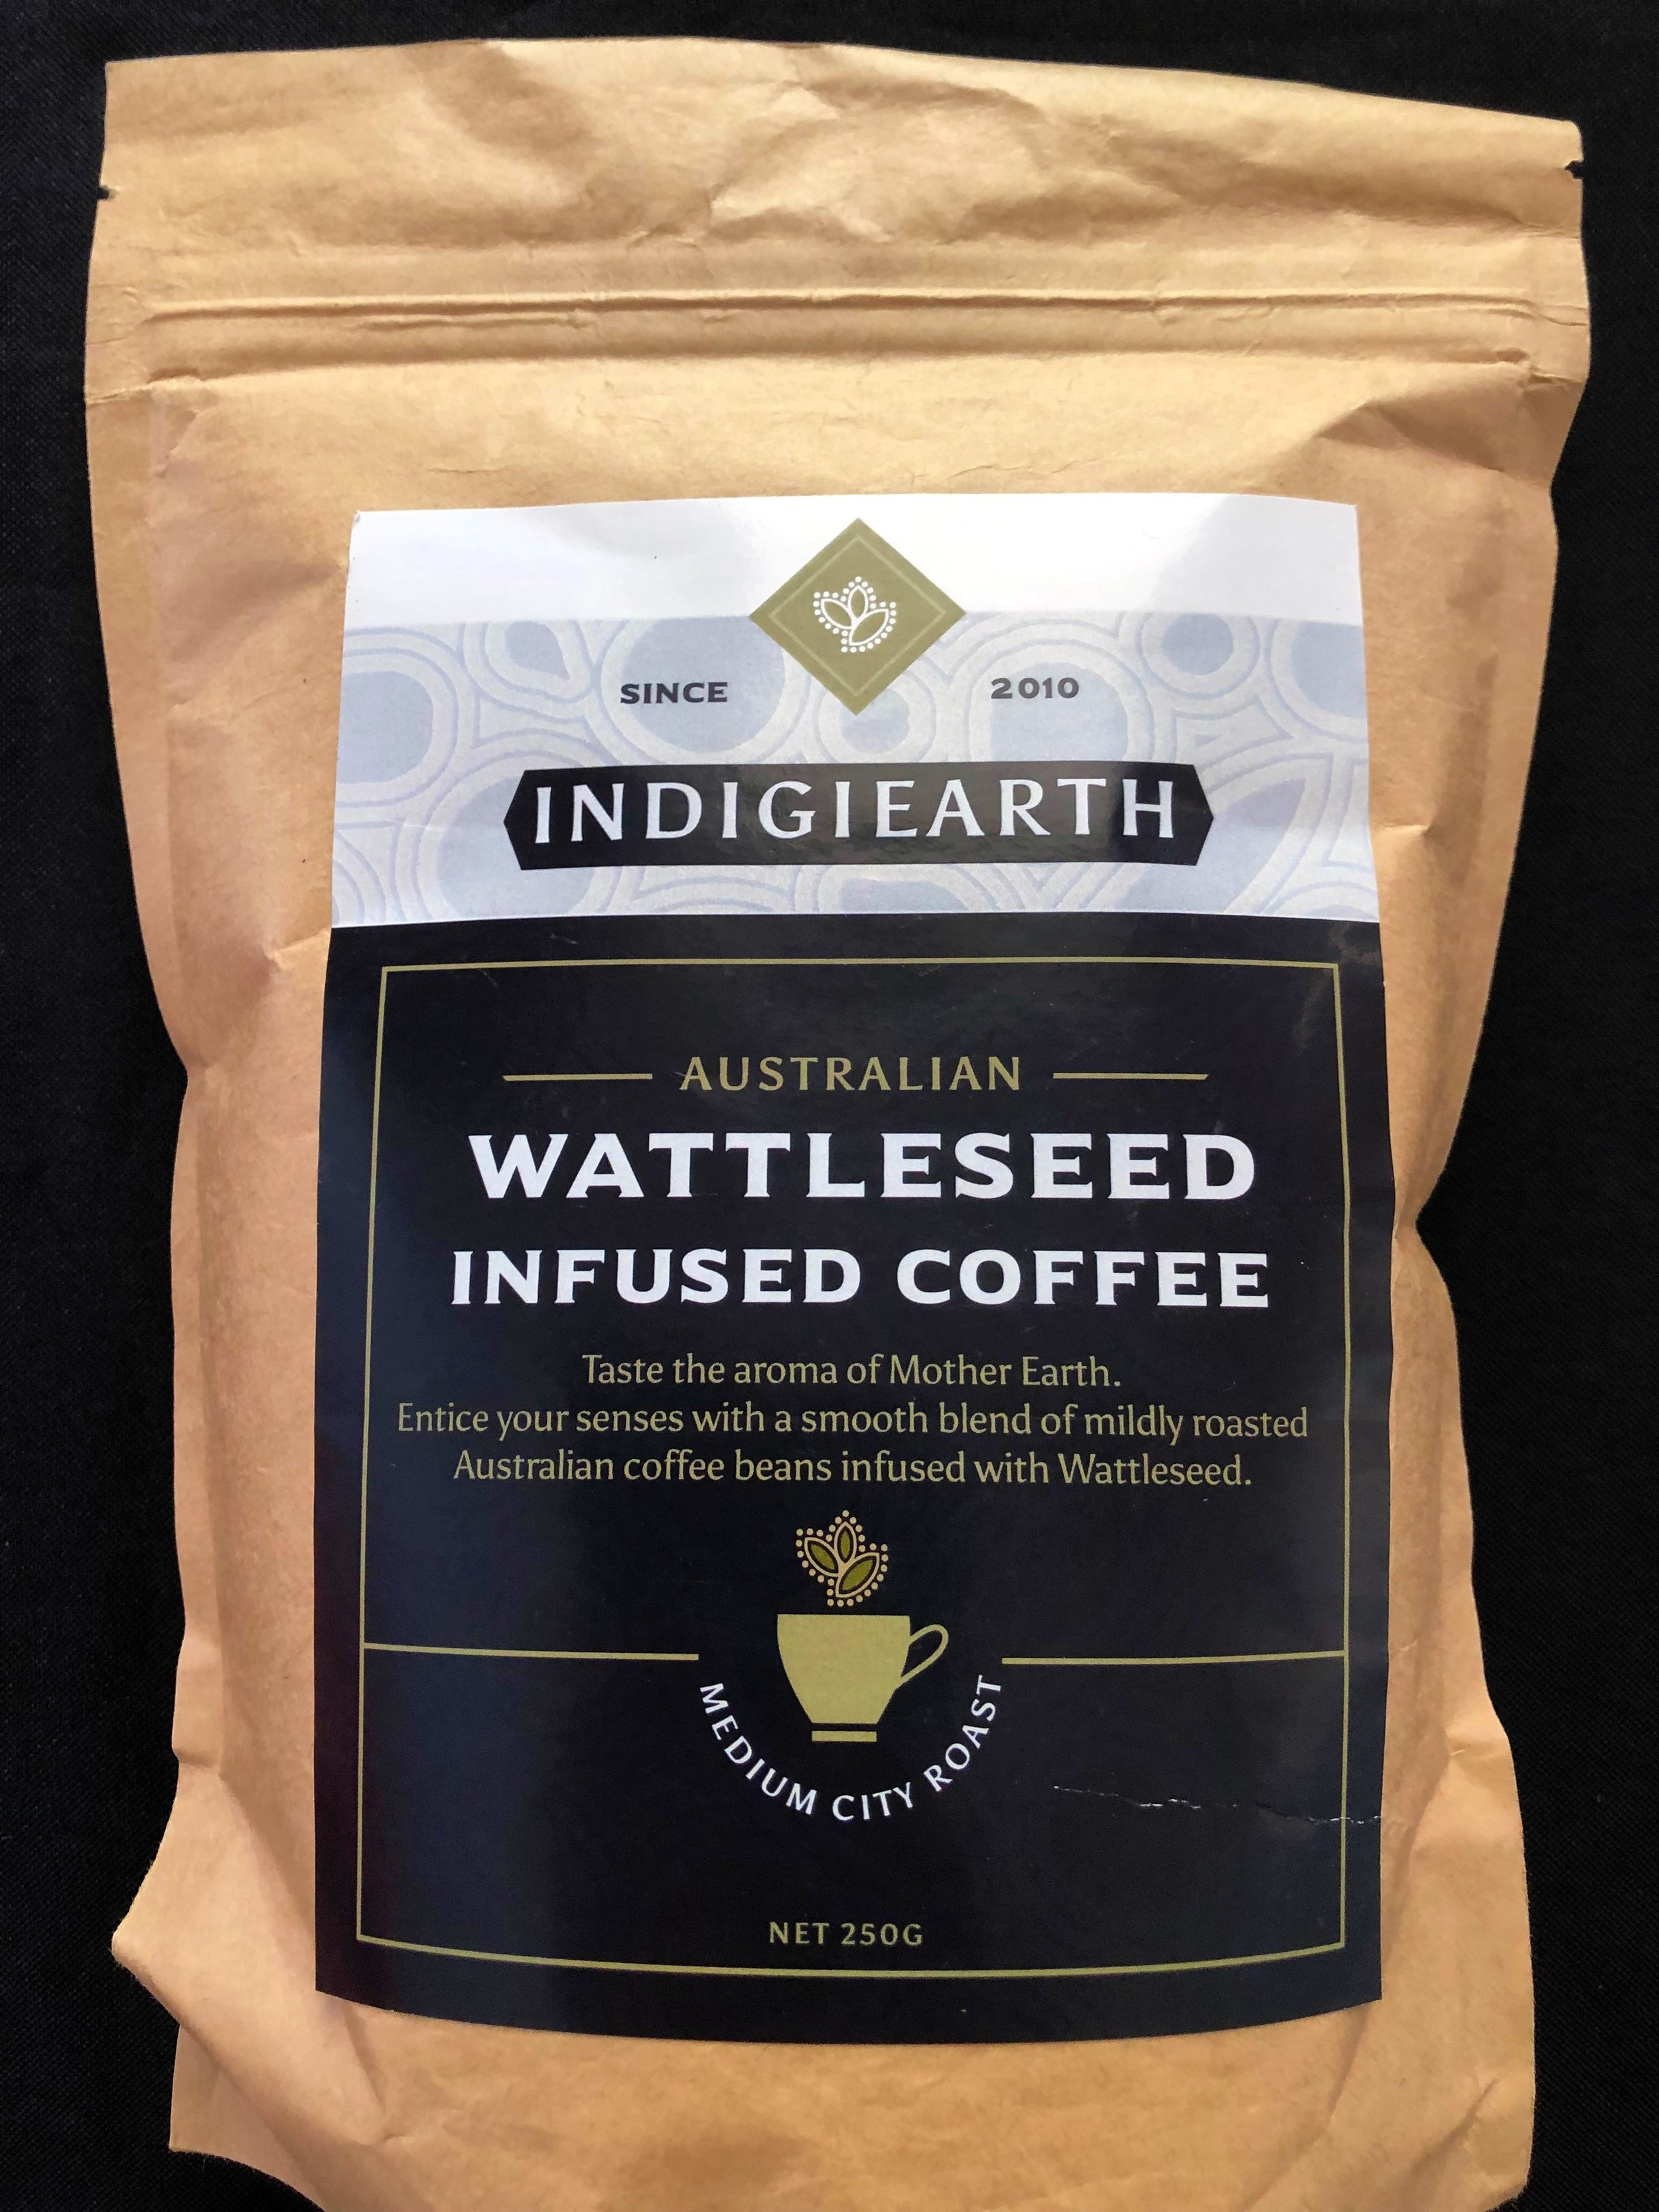 Wattleseed Infused Coffee - The natural coffee hints from native wattleseed add an additional dimension to this Australian grown and ground coffee bean blend.